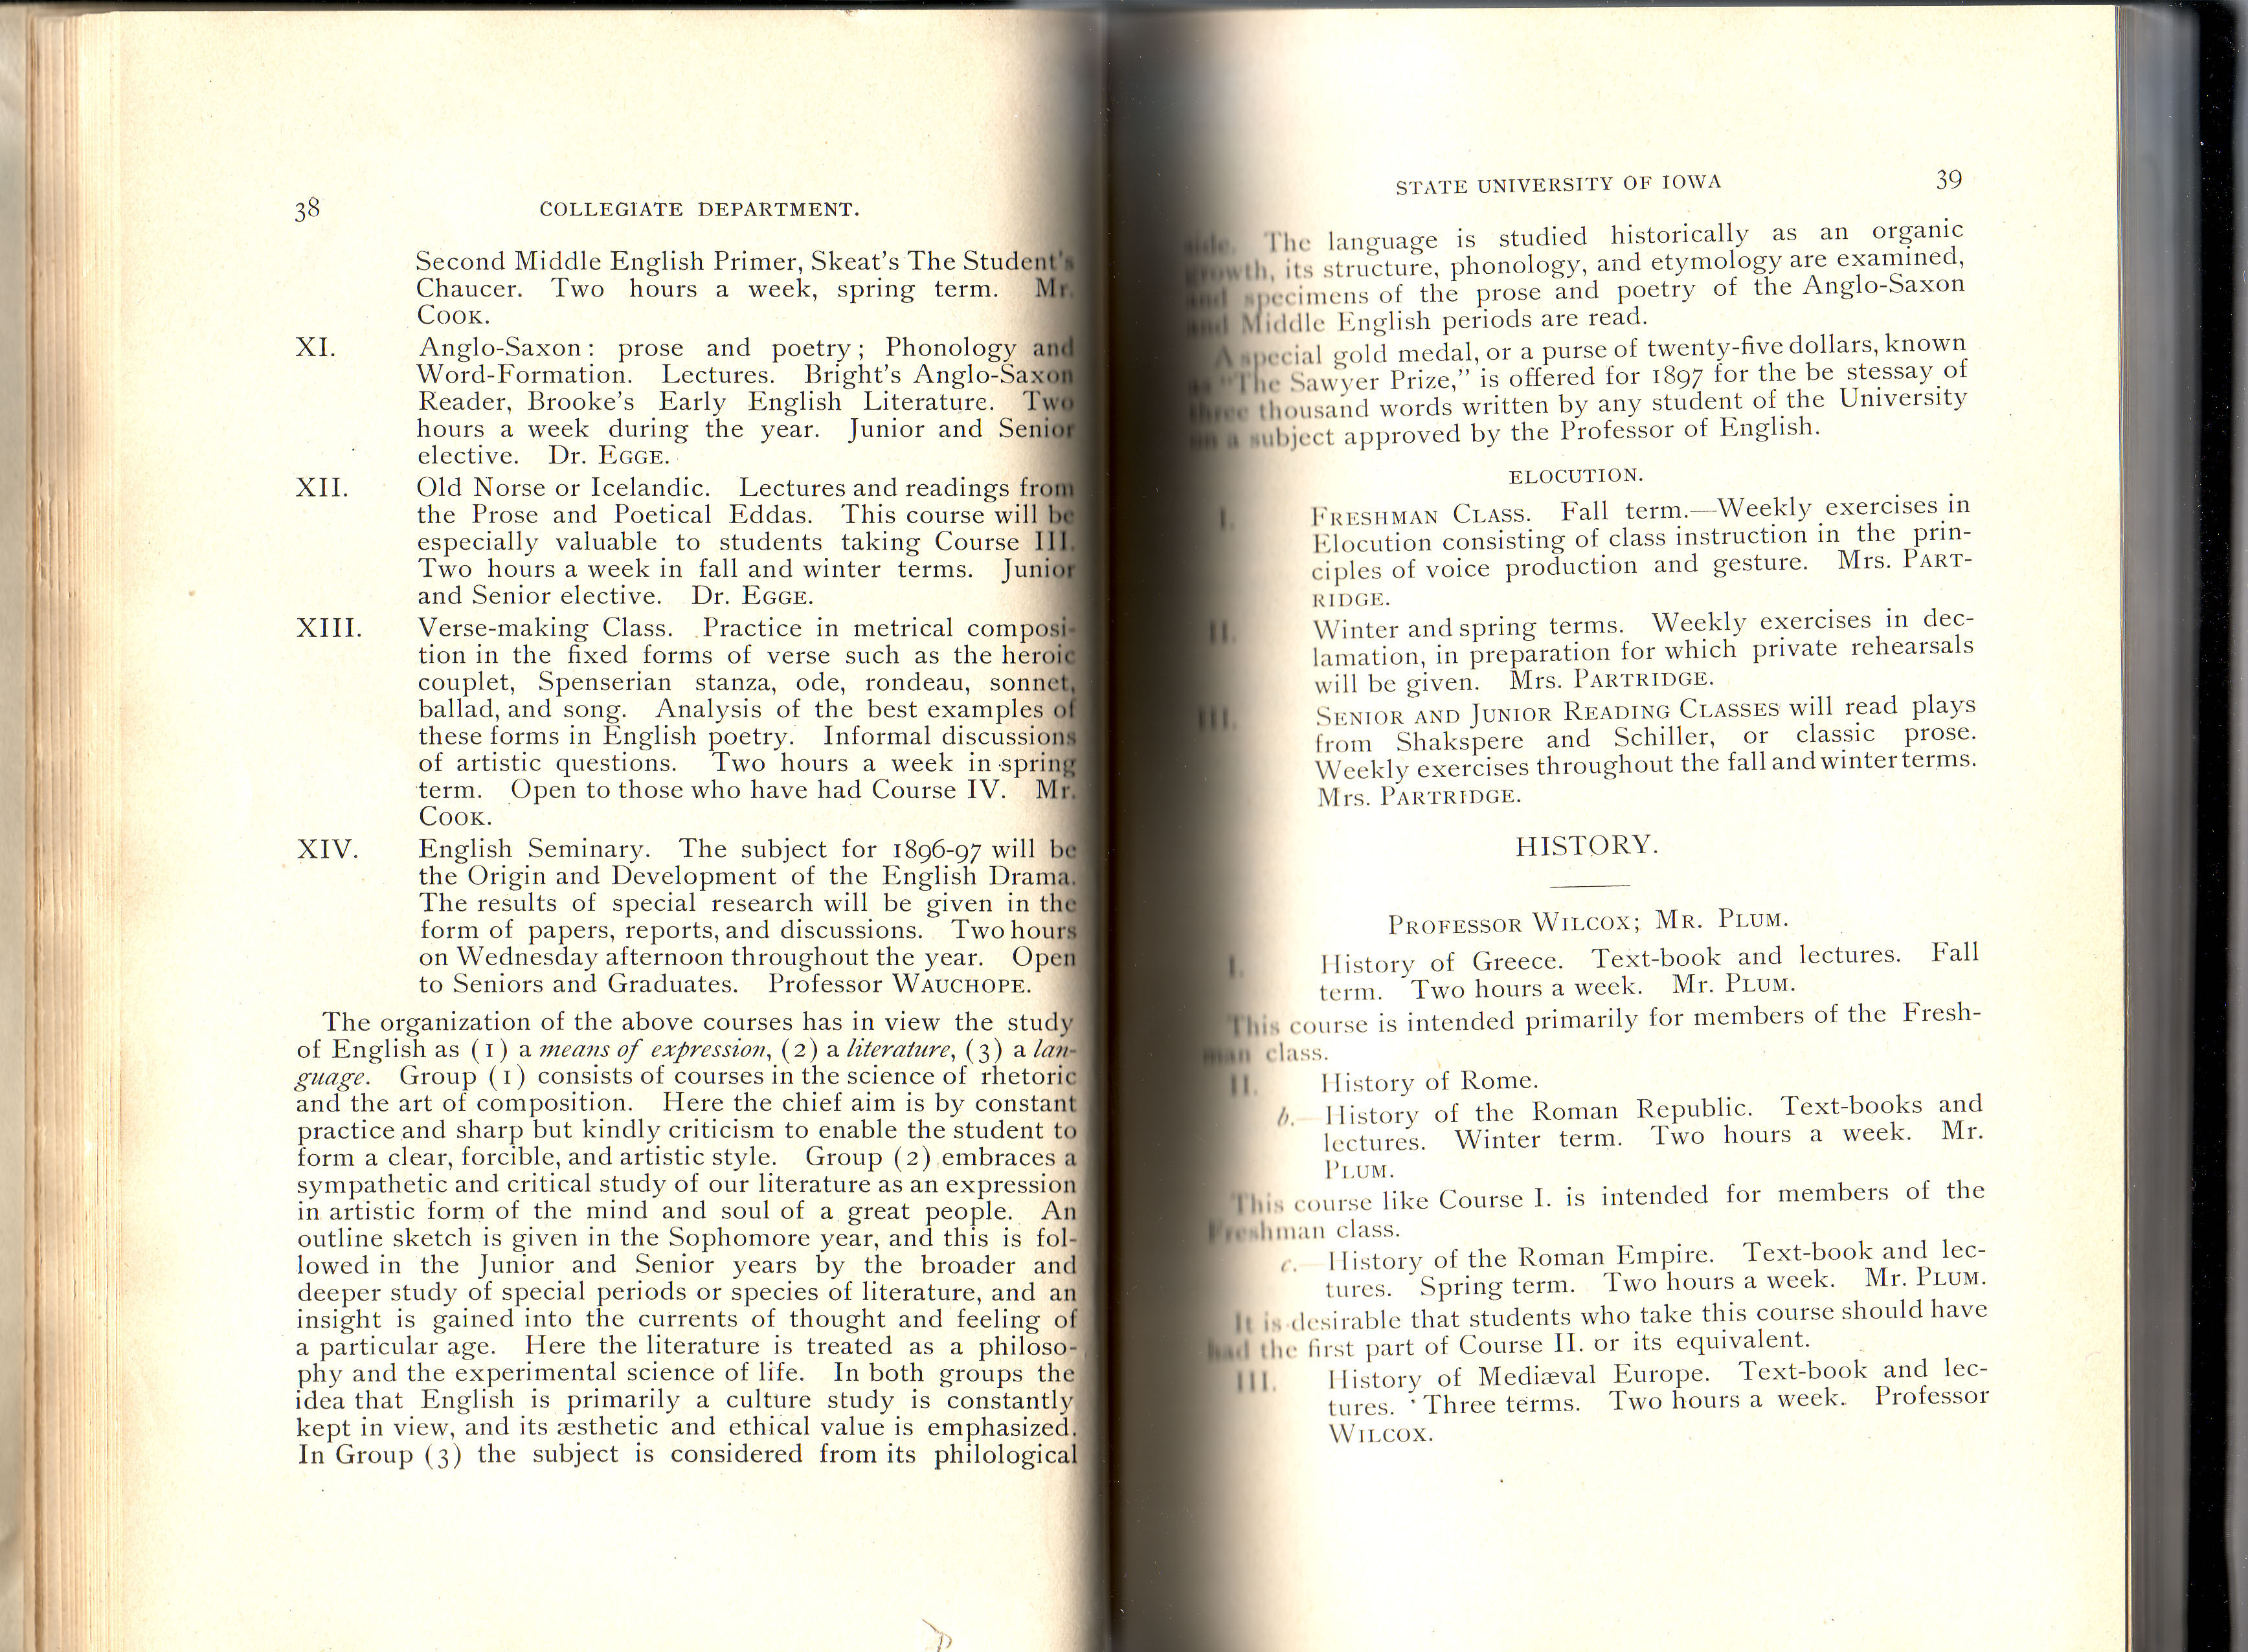 Spring 1897 catalog for the University of Iowa that makes mention of Verse Making